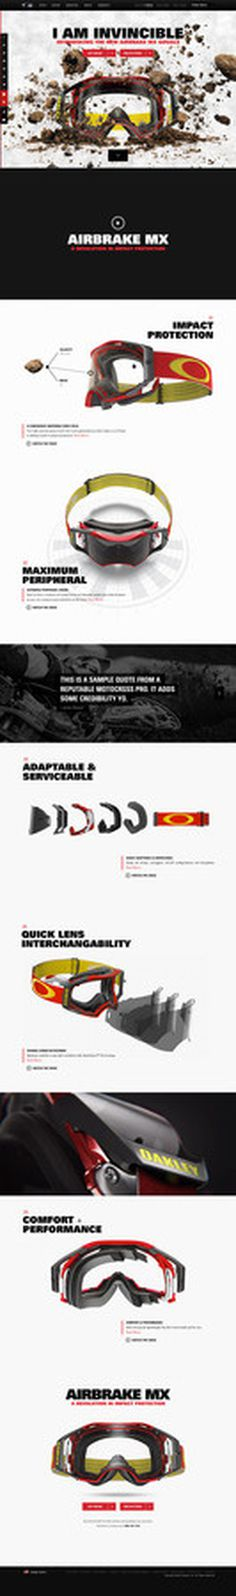 Oakley Minisite - Airbrake MX #animation #oakley #parallax #minisite #layout #web